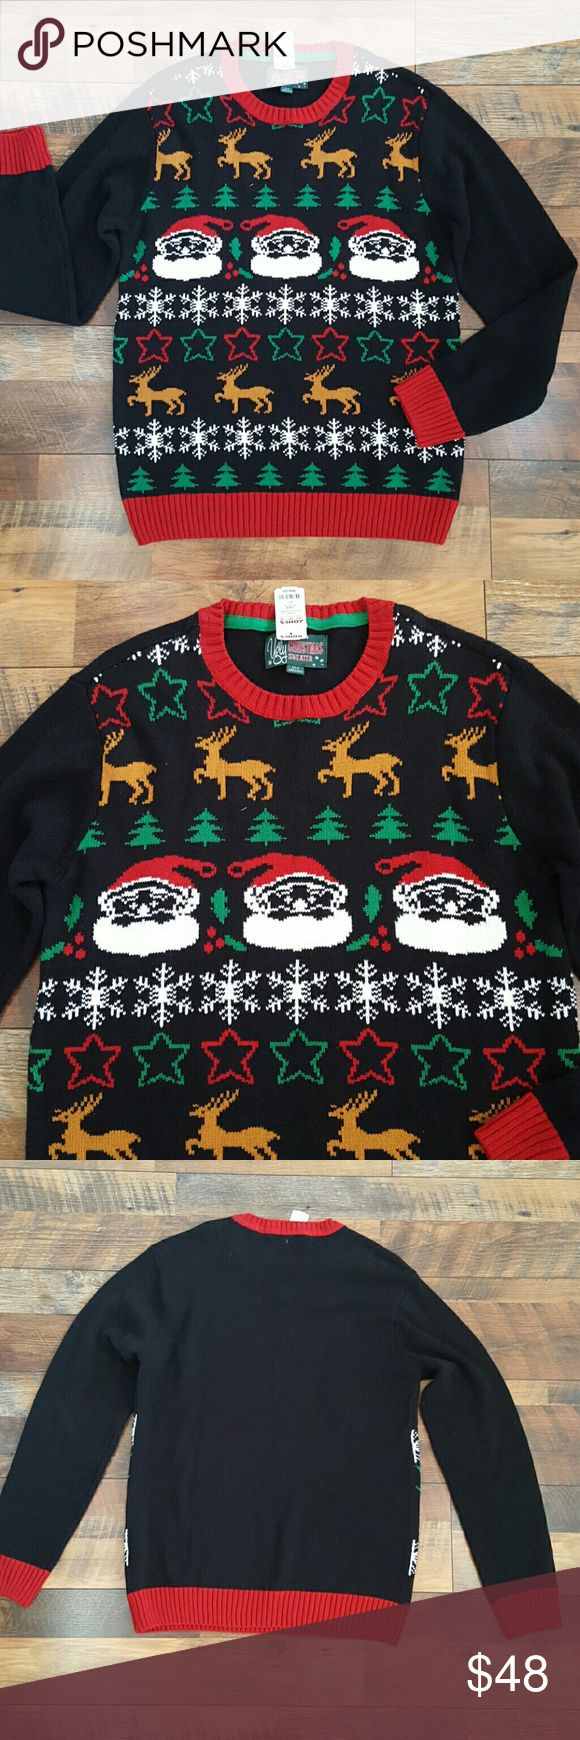 Men's Christmas Ugly Sweater NWT Mens Christmas Ugly Sweater perfect for that upcoming Christmas Ugly Sweater contest party. Brand new with tags.  60% Cotton  40% Acrylic  Machine wash cold ugly Christmas sweater  Sweaters Crewneck